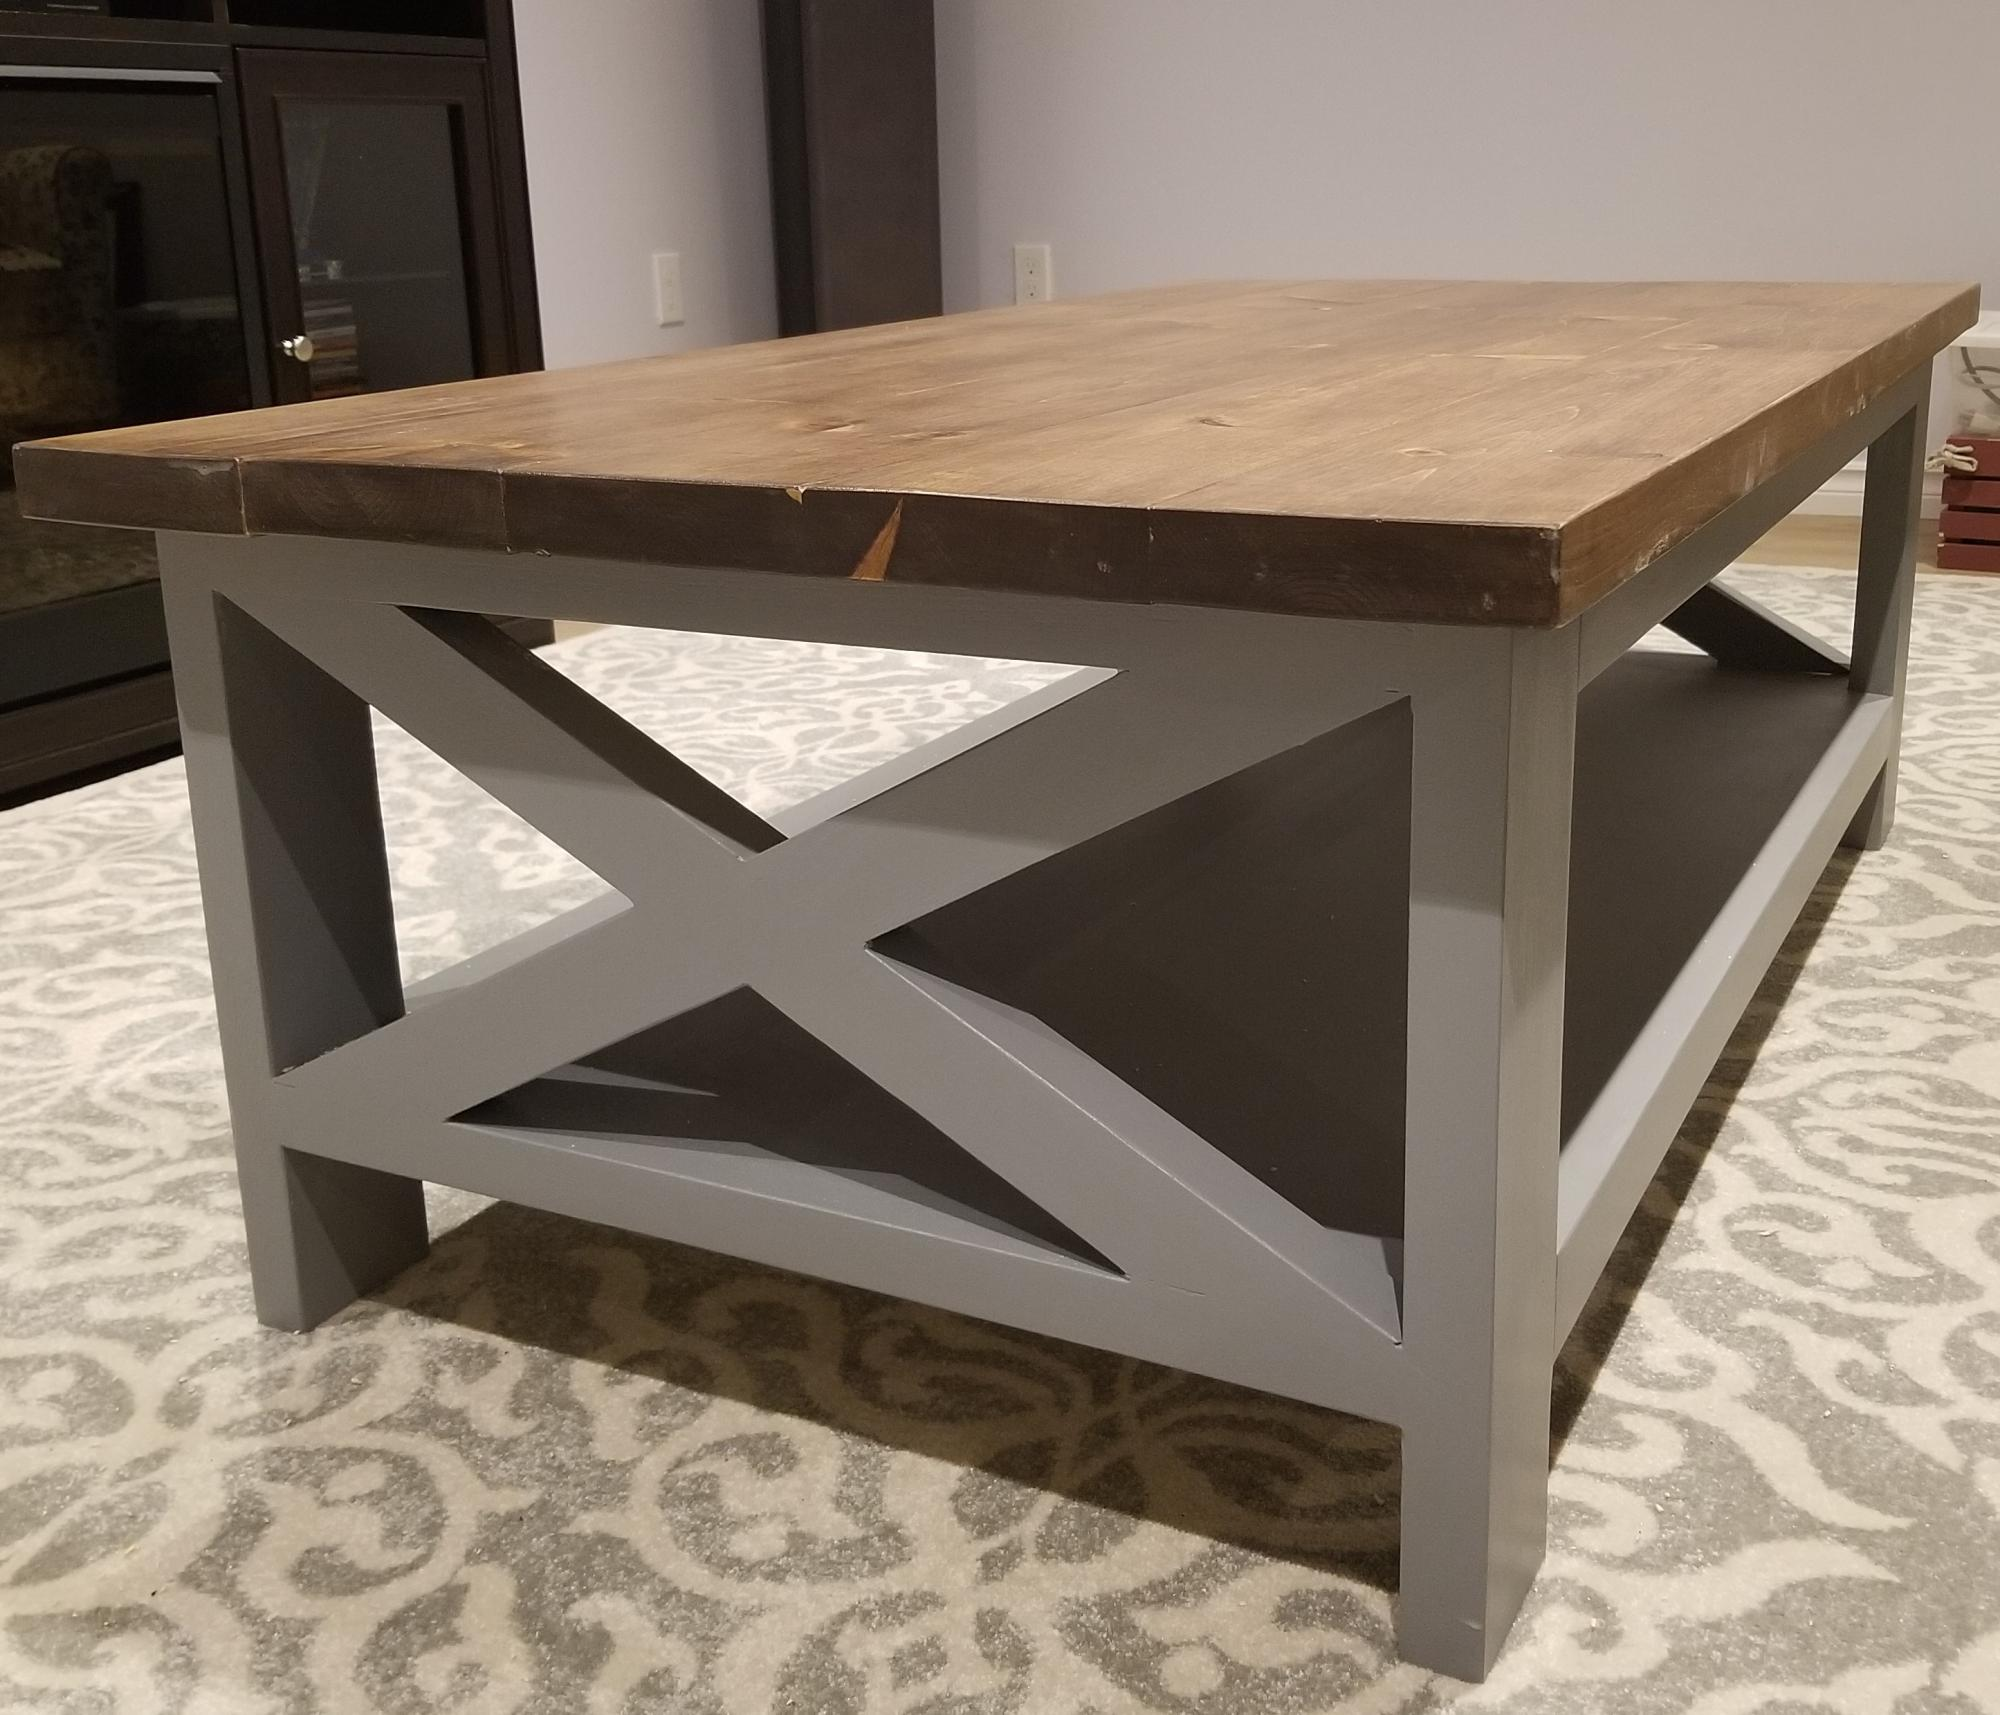 Farmhouse Coffee Table First Project Ever Ana White